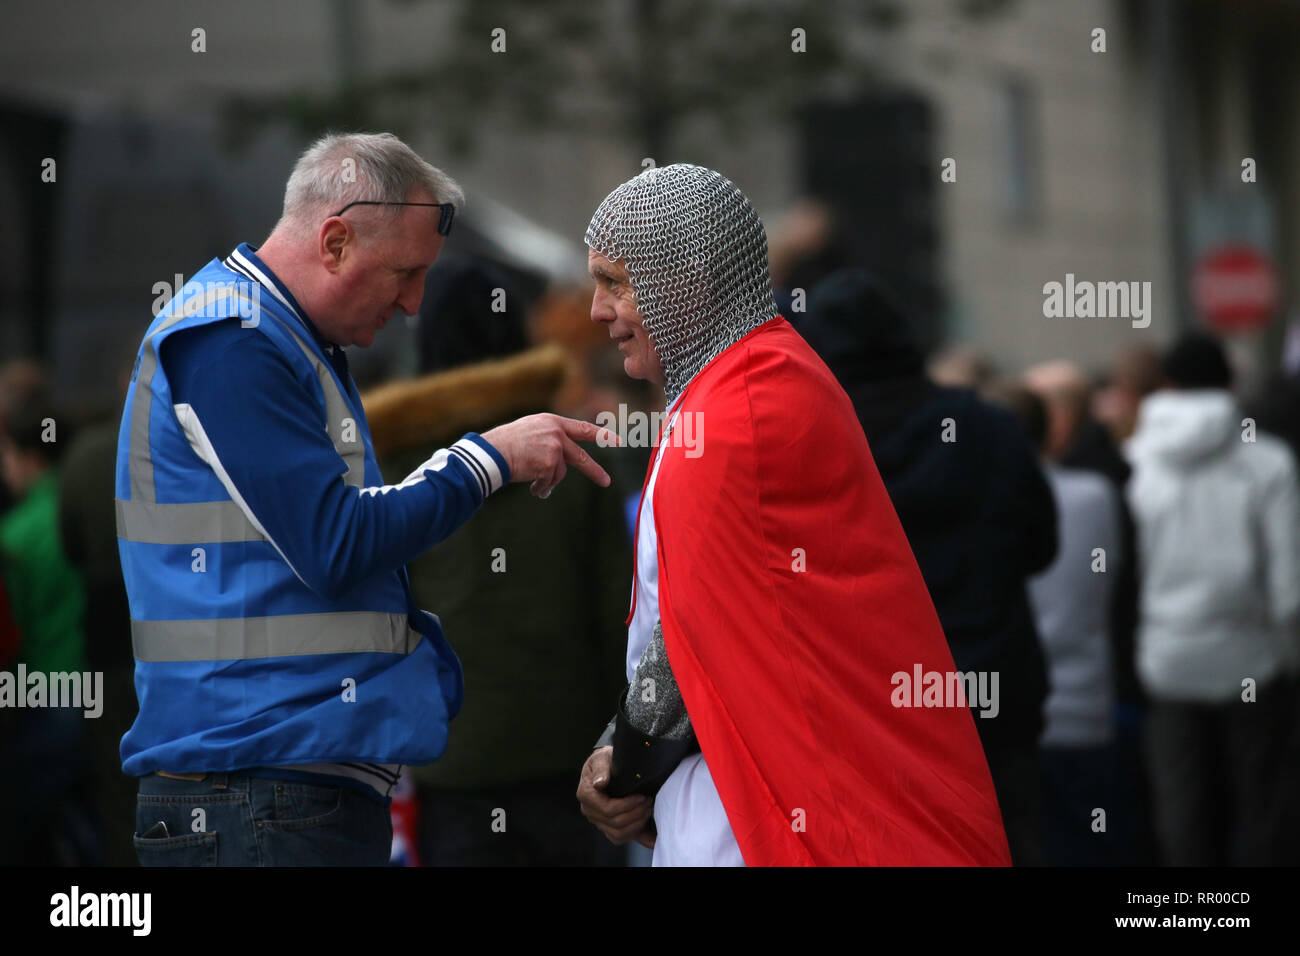 Manchester, UK. 23rd Feb, 2019. Around 4000 Tommy Robinson supporters gather to hear the former EDL leader speak and show a documentary which he says is an expose on the BBC. Media City, Salford, UK, 23rd February 2019 (C)Barbara Cook/Alamy Live News Credit: Barbara Cook/Alamy Live News Credit: Barbara Cook/Alamy Live News - Stock Image